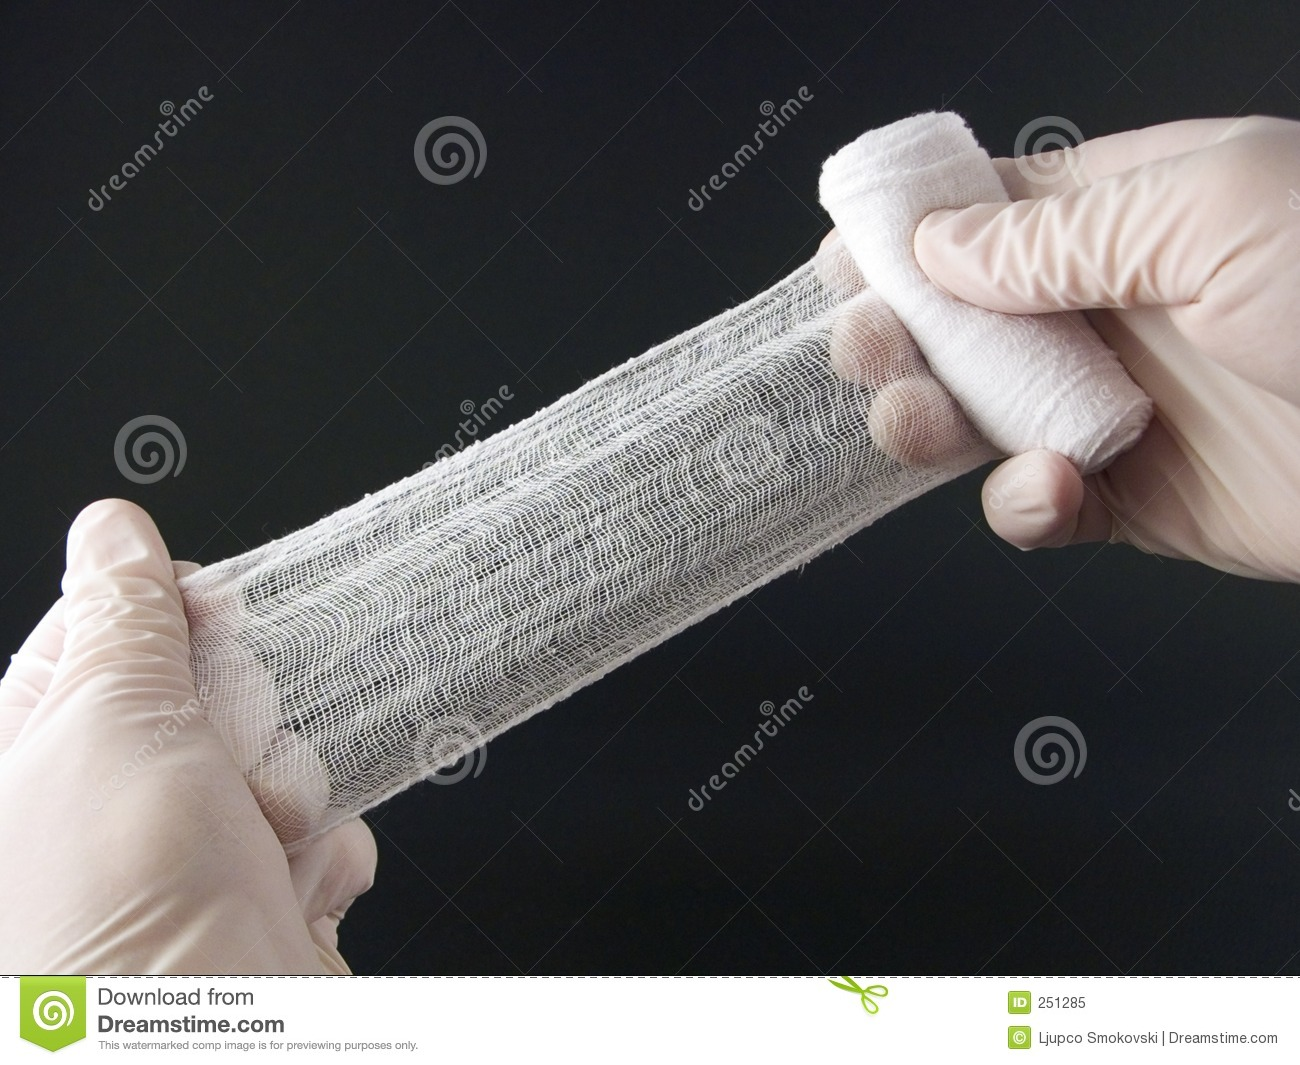 Hands with bandage